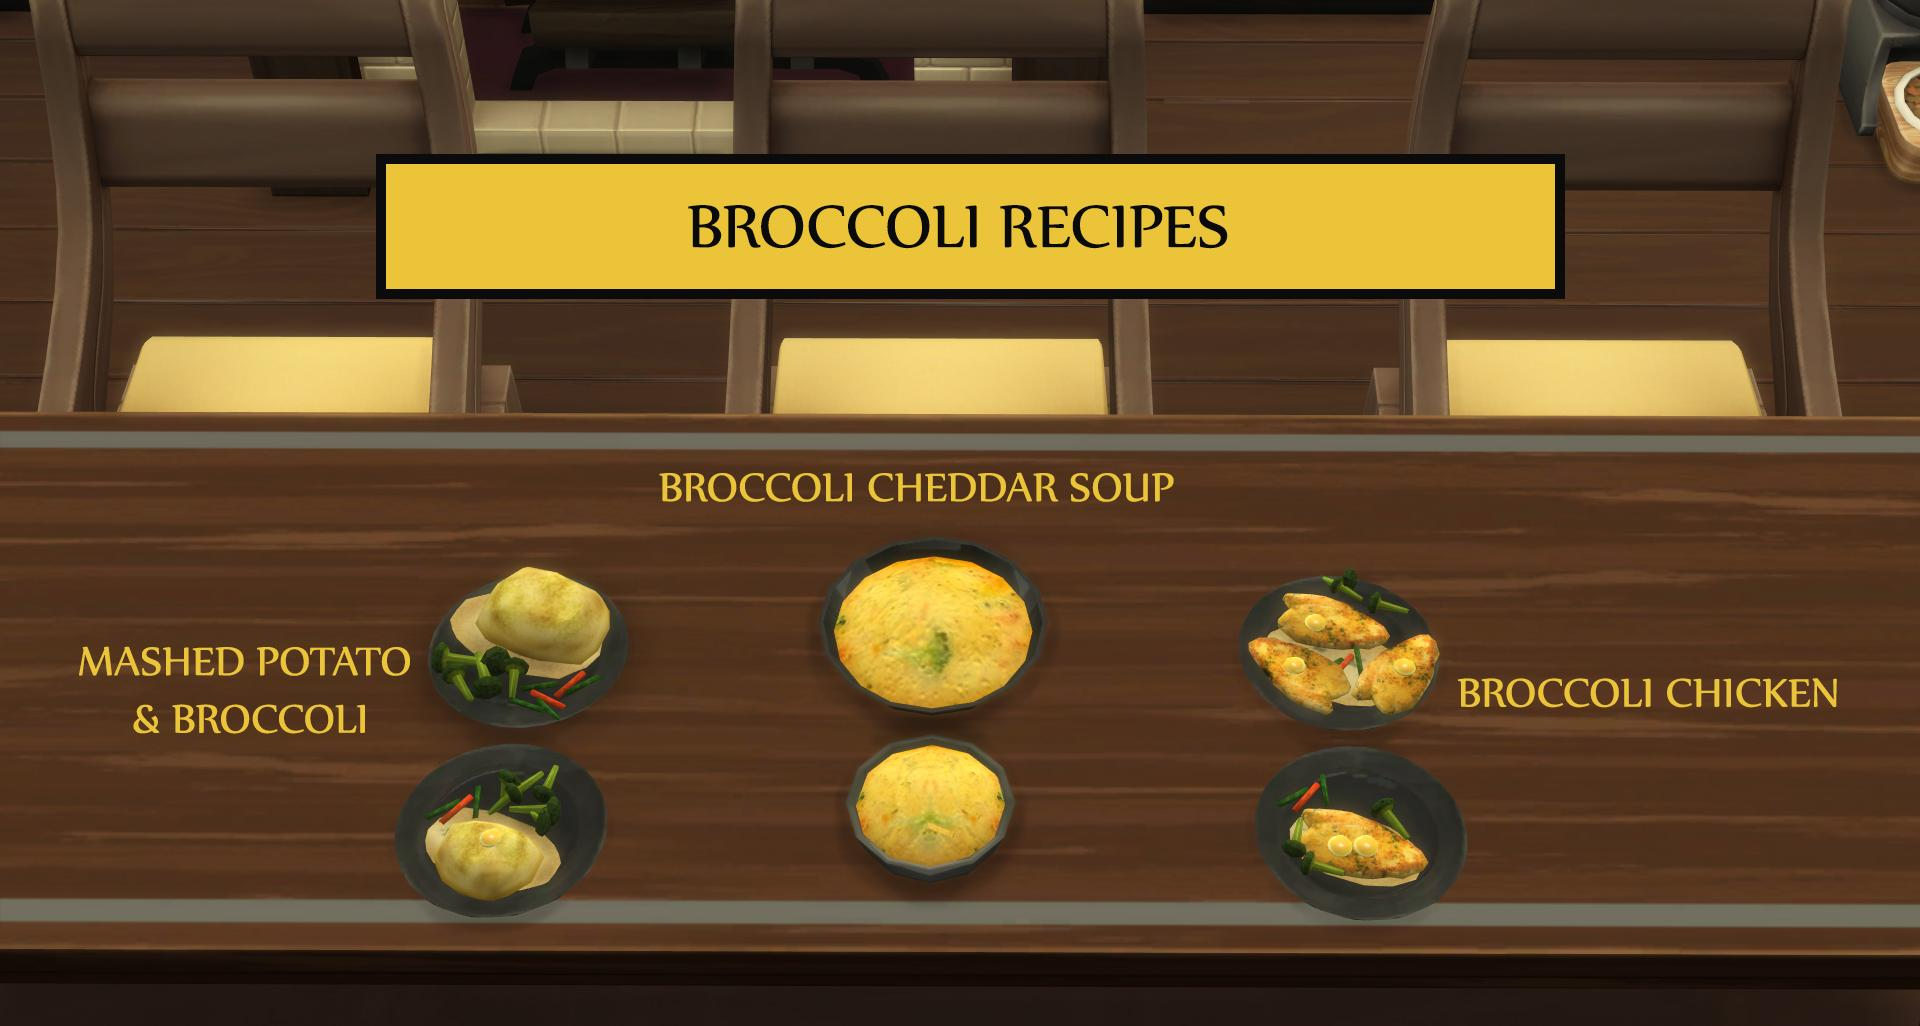 Broccoli Recipes - Mashed Potato, Chicken and Cheddar Soup (Update - 14.12.2019)